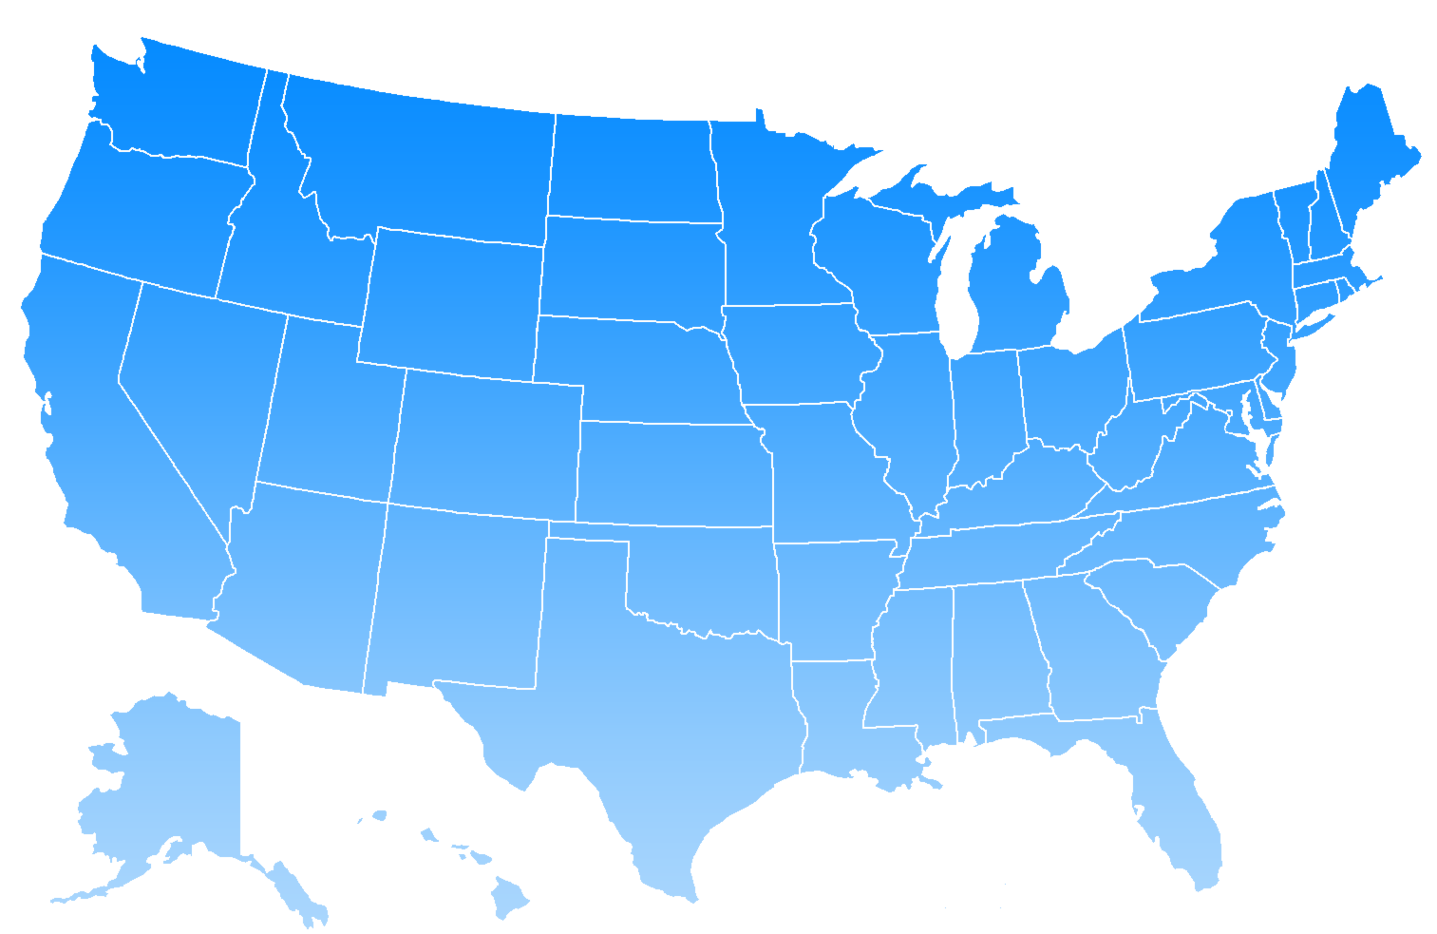 US UNITED STATES Cities Ranked Largest To Smallest Clipart.